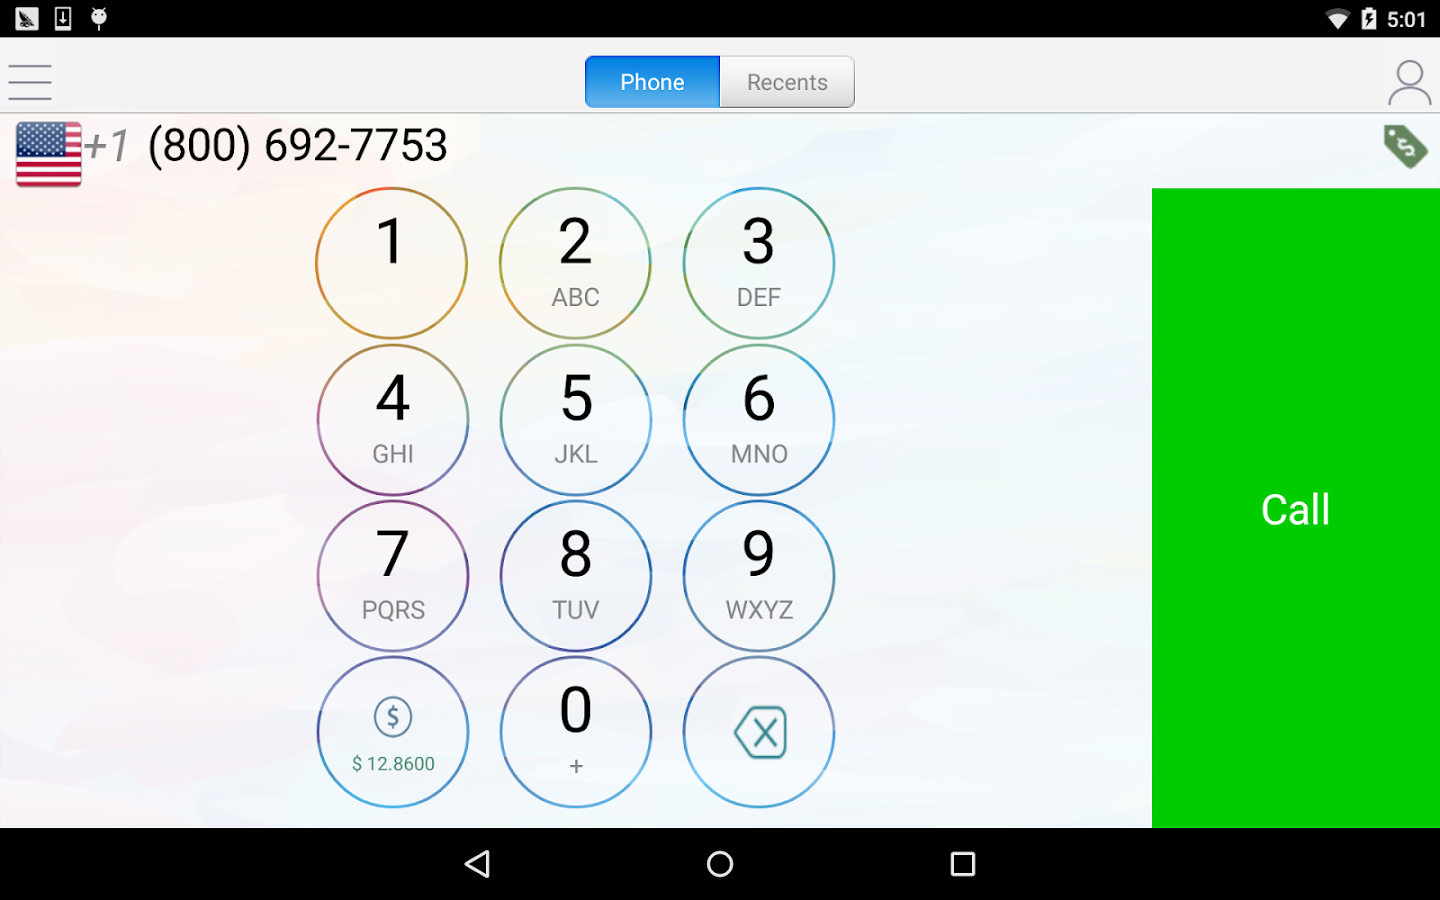 WePhone - free phone calls & cheap calls- screenshot